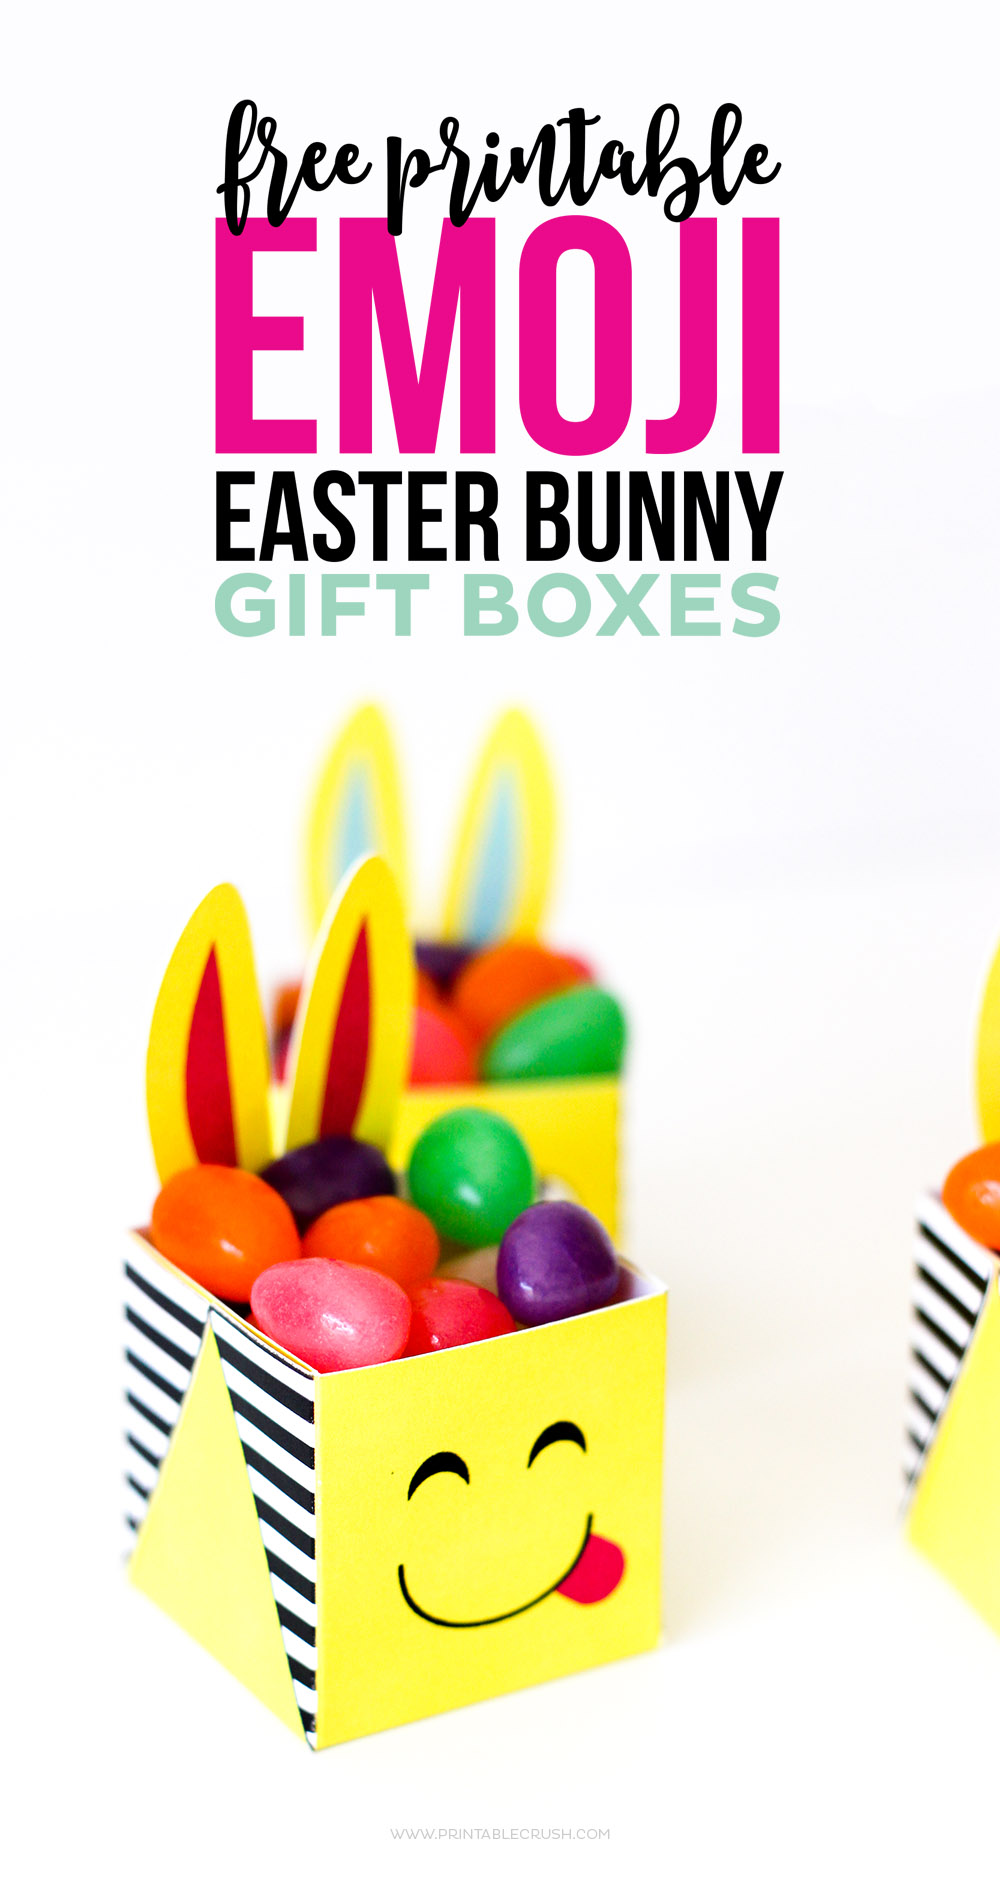 Easter emoji bunny boxes free printable printable crush tongue easter emoji box filled with jelly beans negle Choice Image